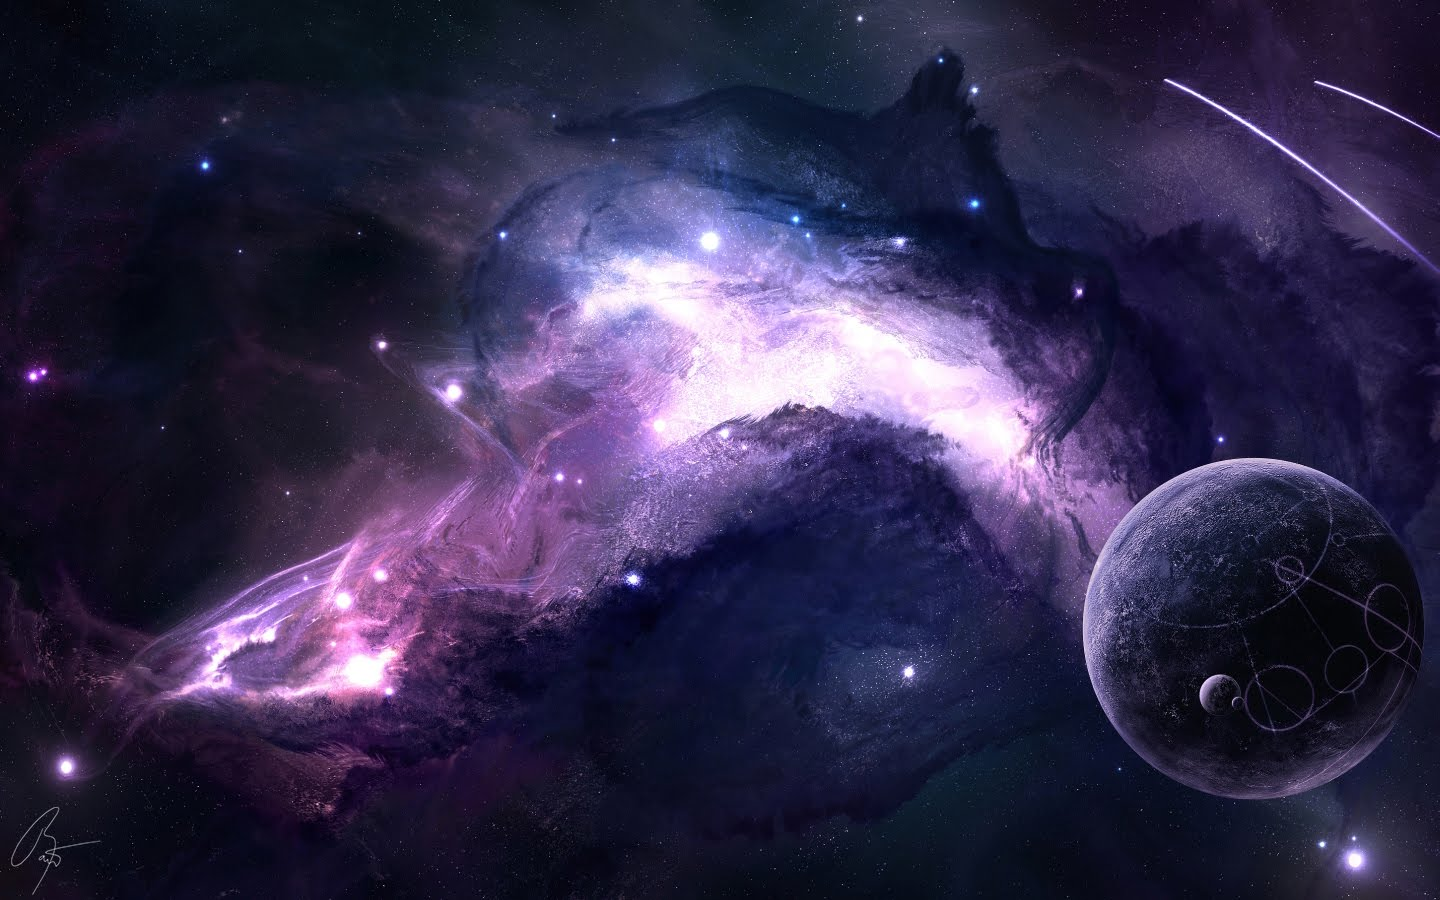 HD Space Wallpaper [1080p] Ushasrees Blog 1440x900